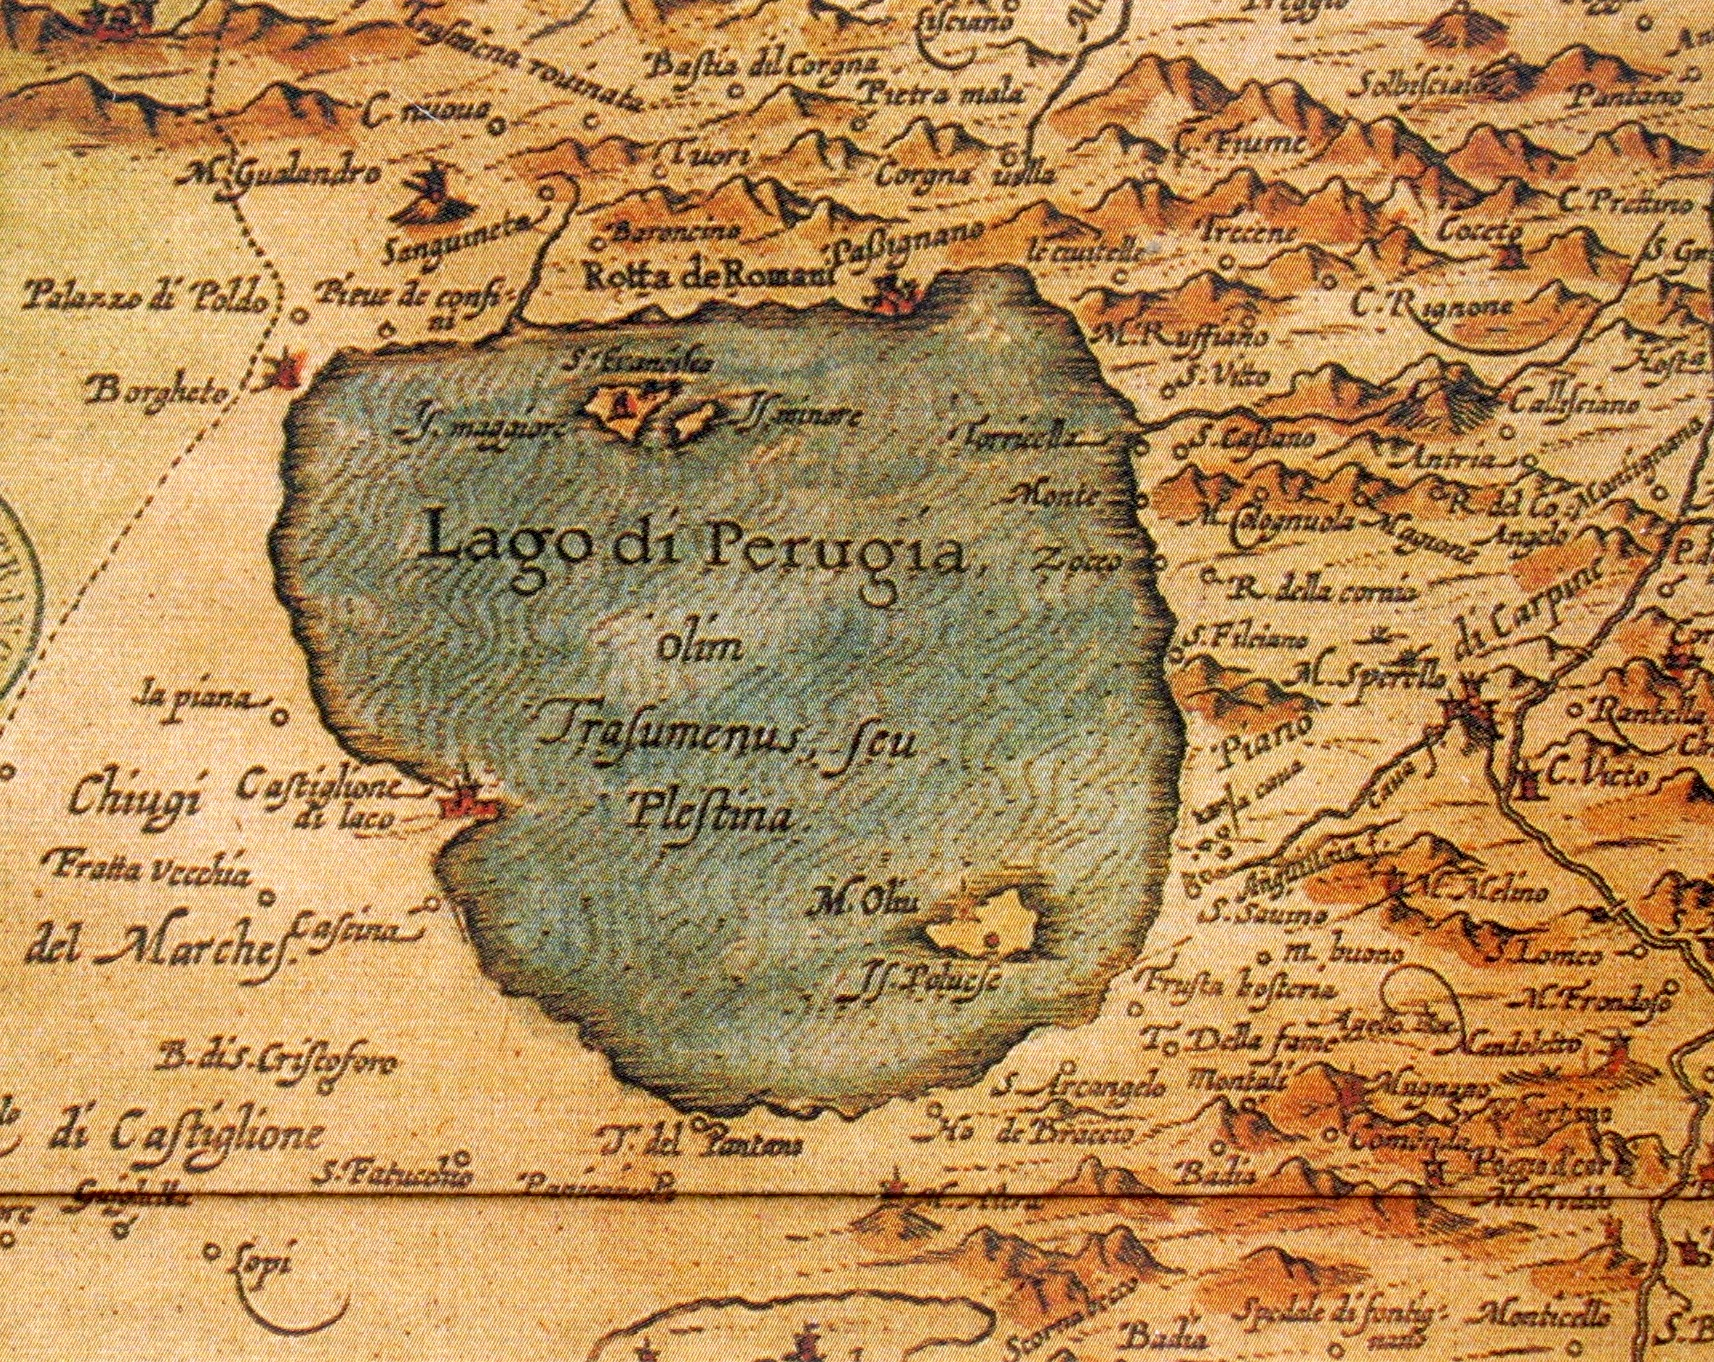 File:Lago Trasimeno Plan.jpg - Wikimedia Commons